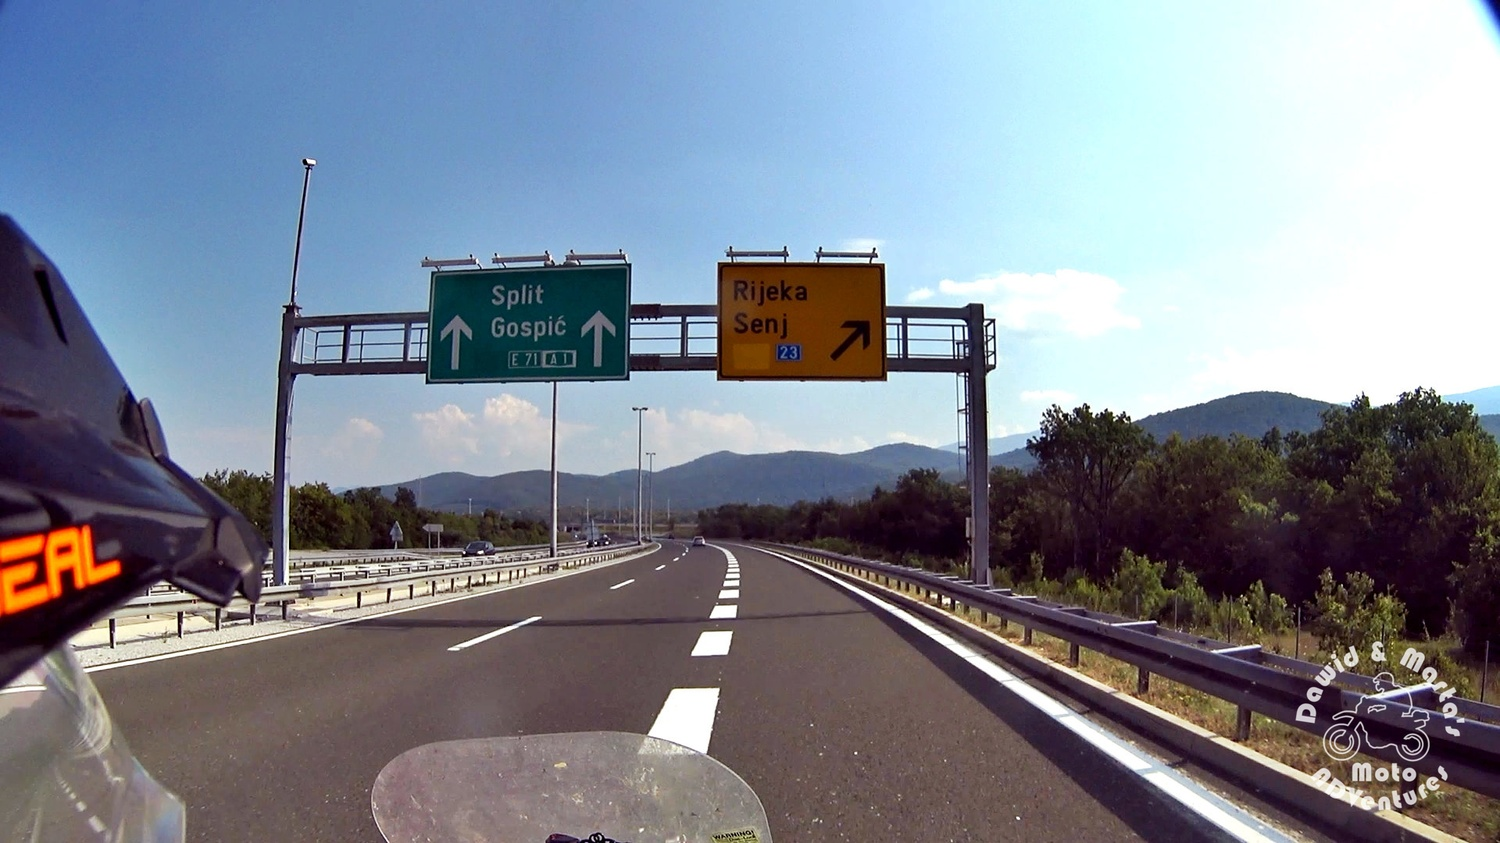 Exit from E71 road to road 23 to Senj, Croatia